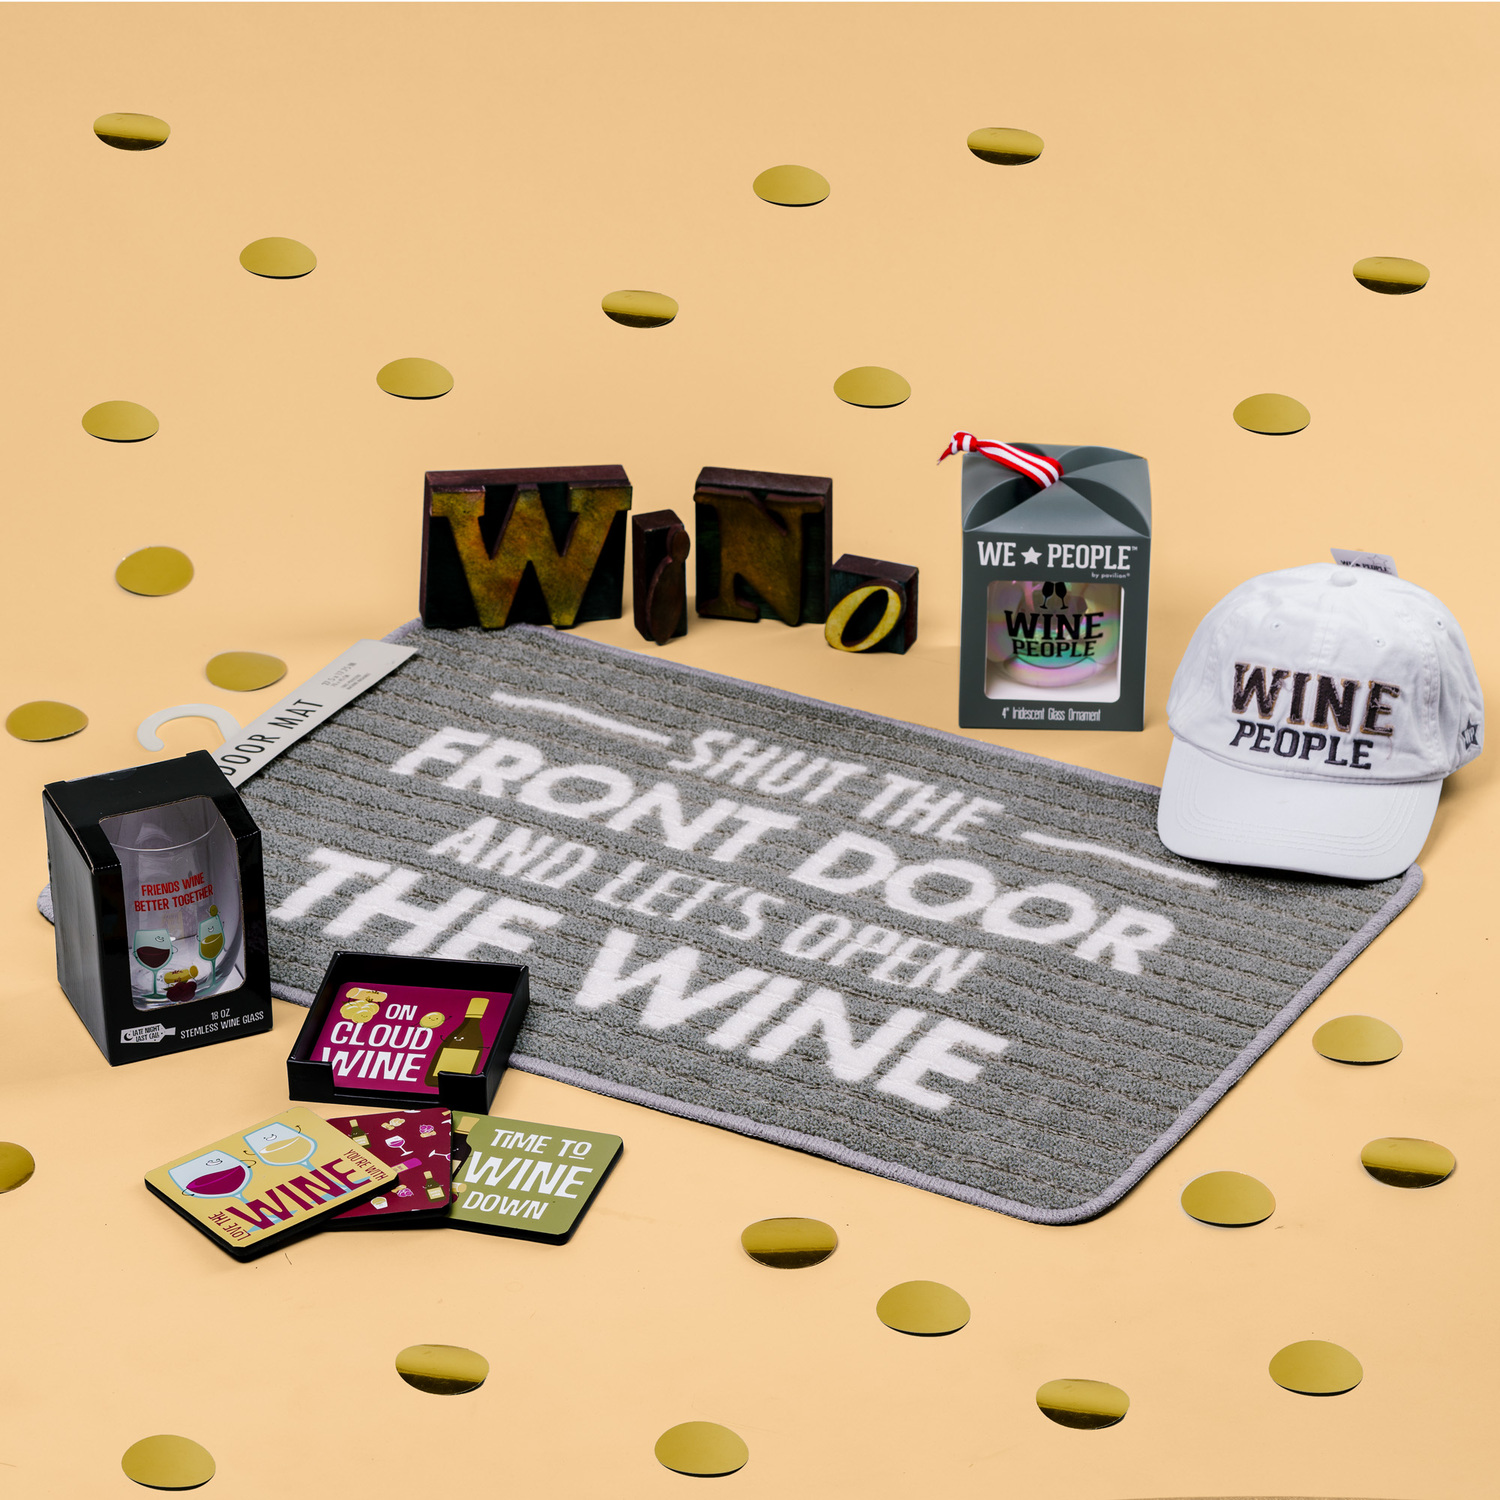 Wine Lover Gift Box by Packaged With Positivity - Wine Lover Gift Box - $110.00 Value